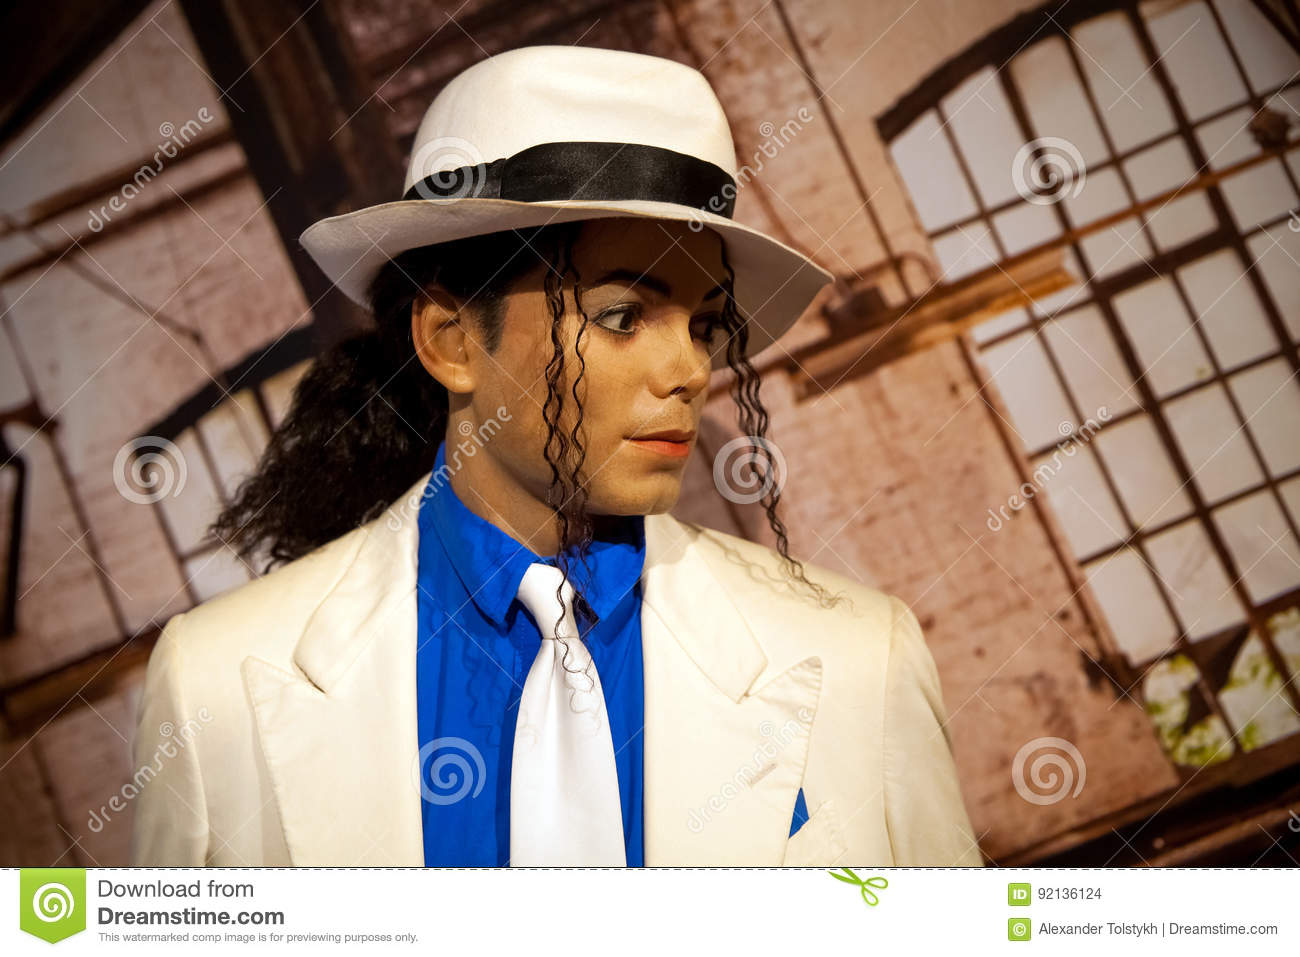 91d2918f793131 Amsterdam, Netherlands - March, 2017: Wax figure of Michael Jackson in  Madame Tussauds Wax museum in Amsterdam, Netherlands